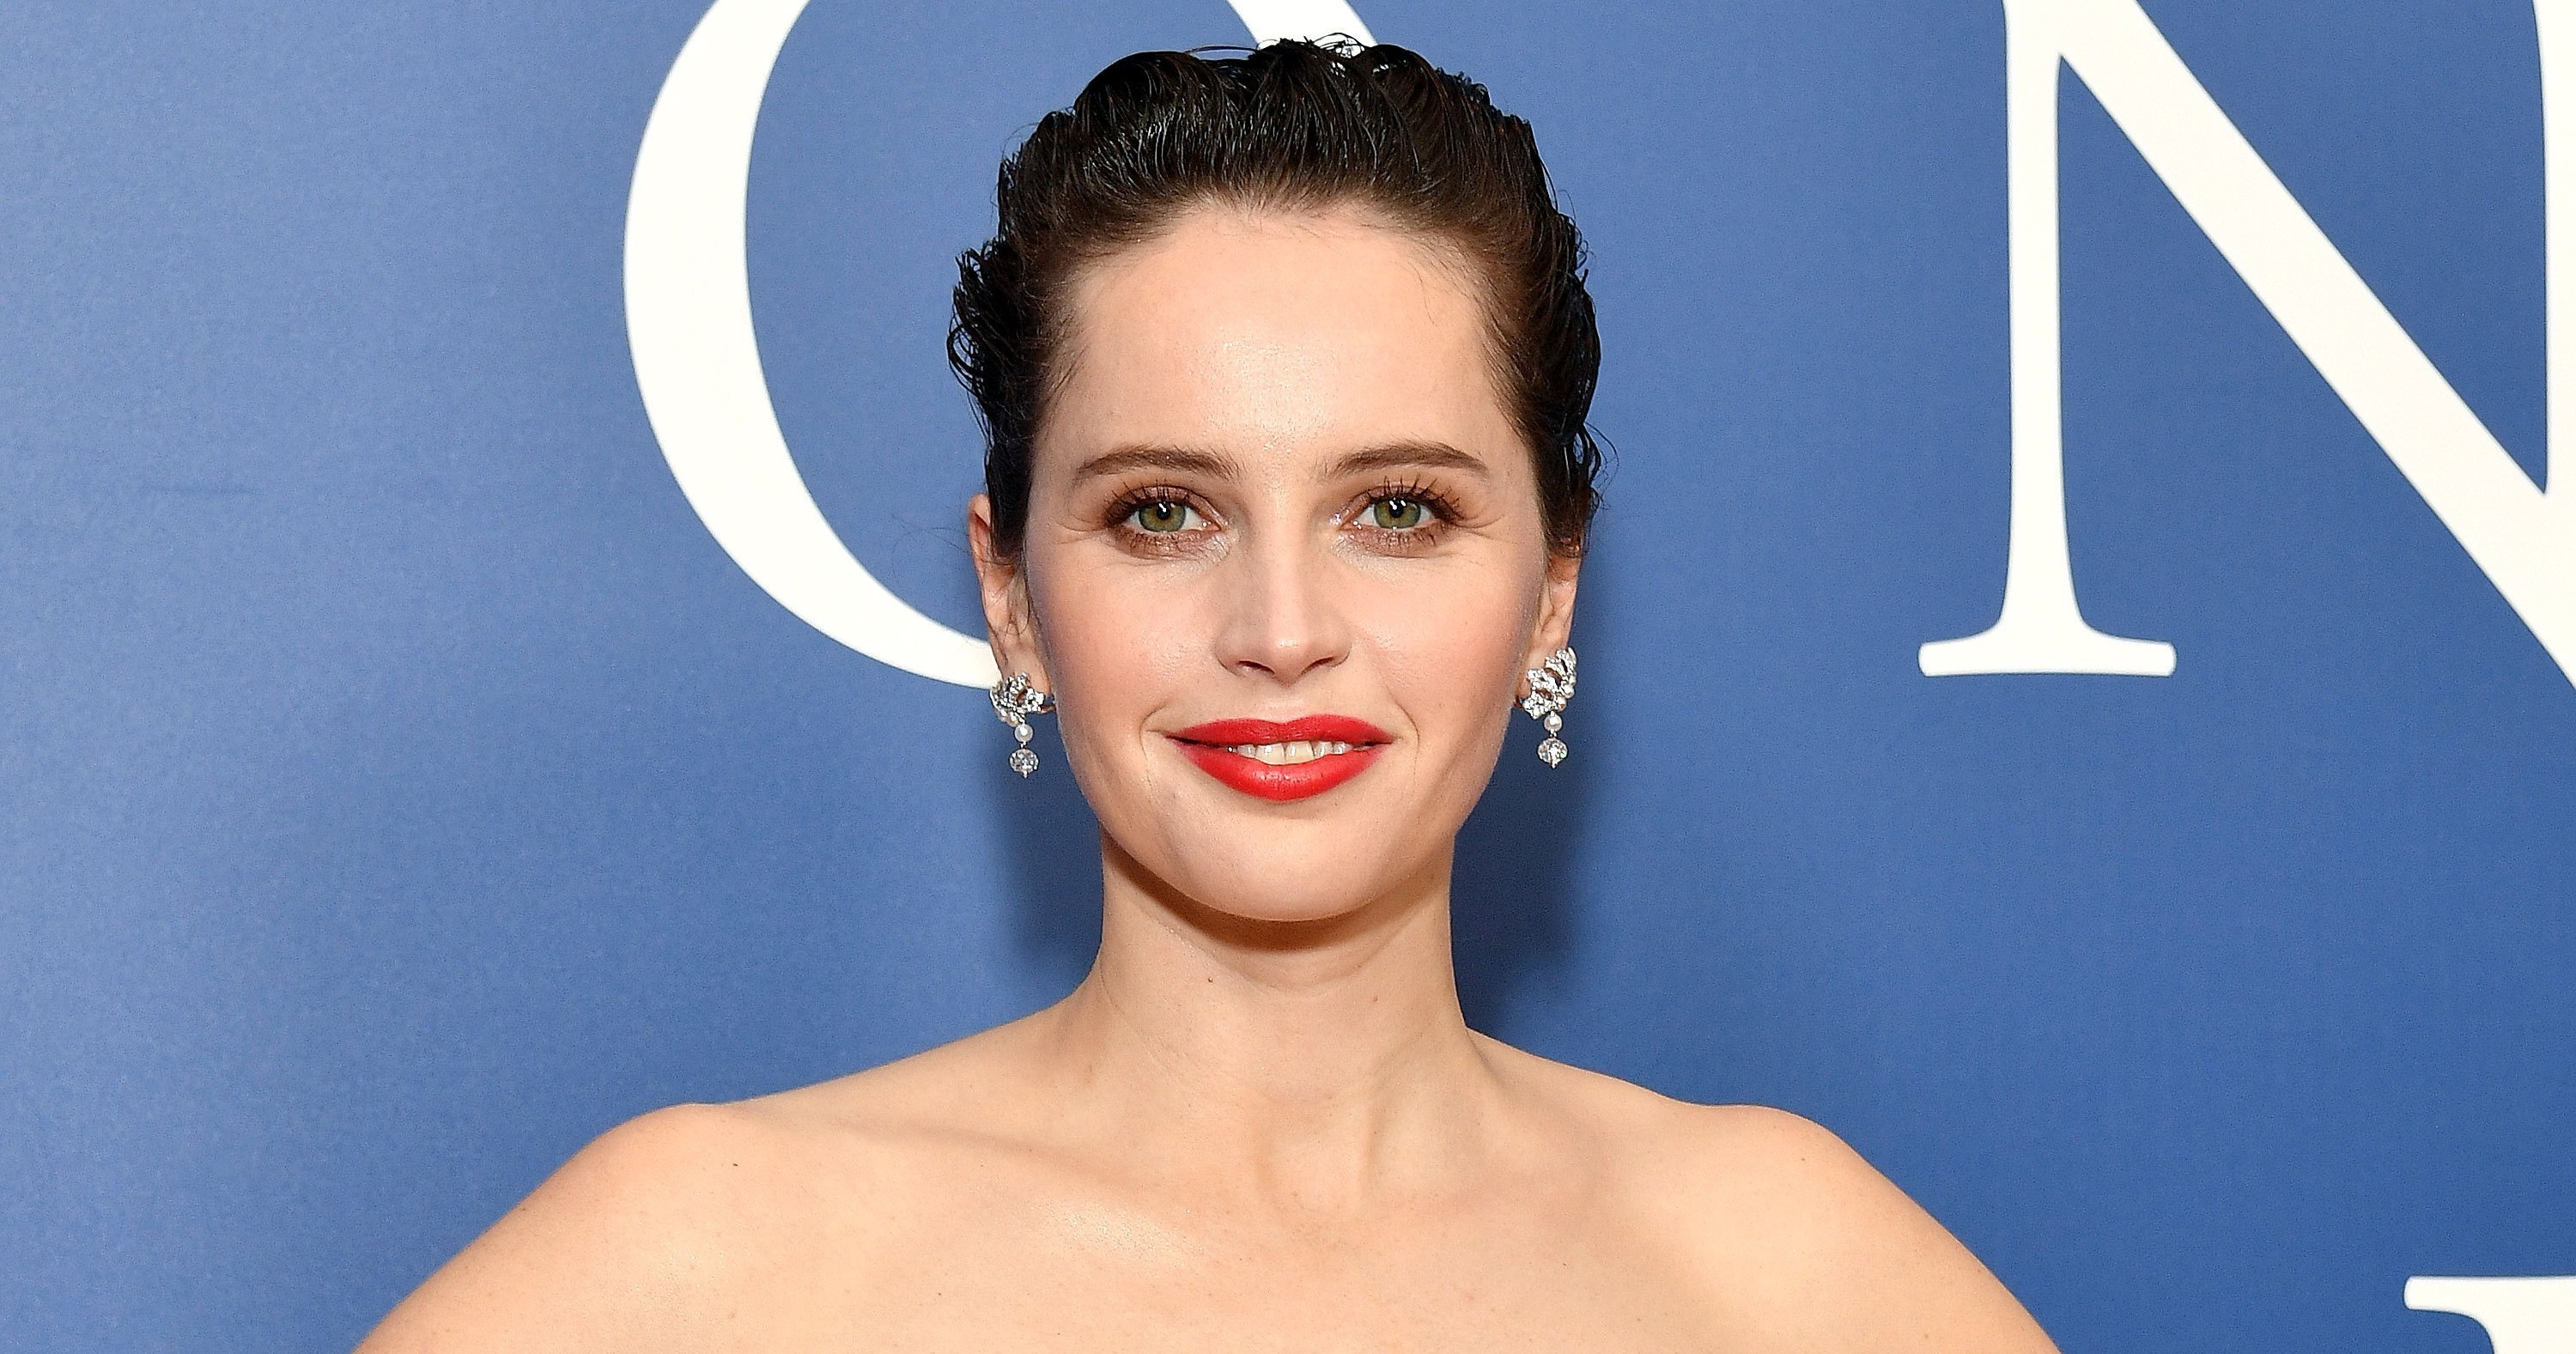 Felicity Jones' 'On the Basis of Sex' Premiere Lipstick Has the Coolest Story